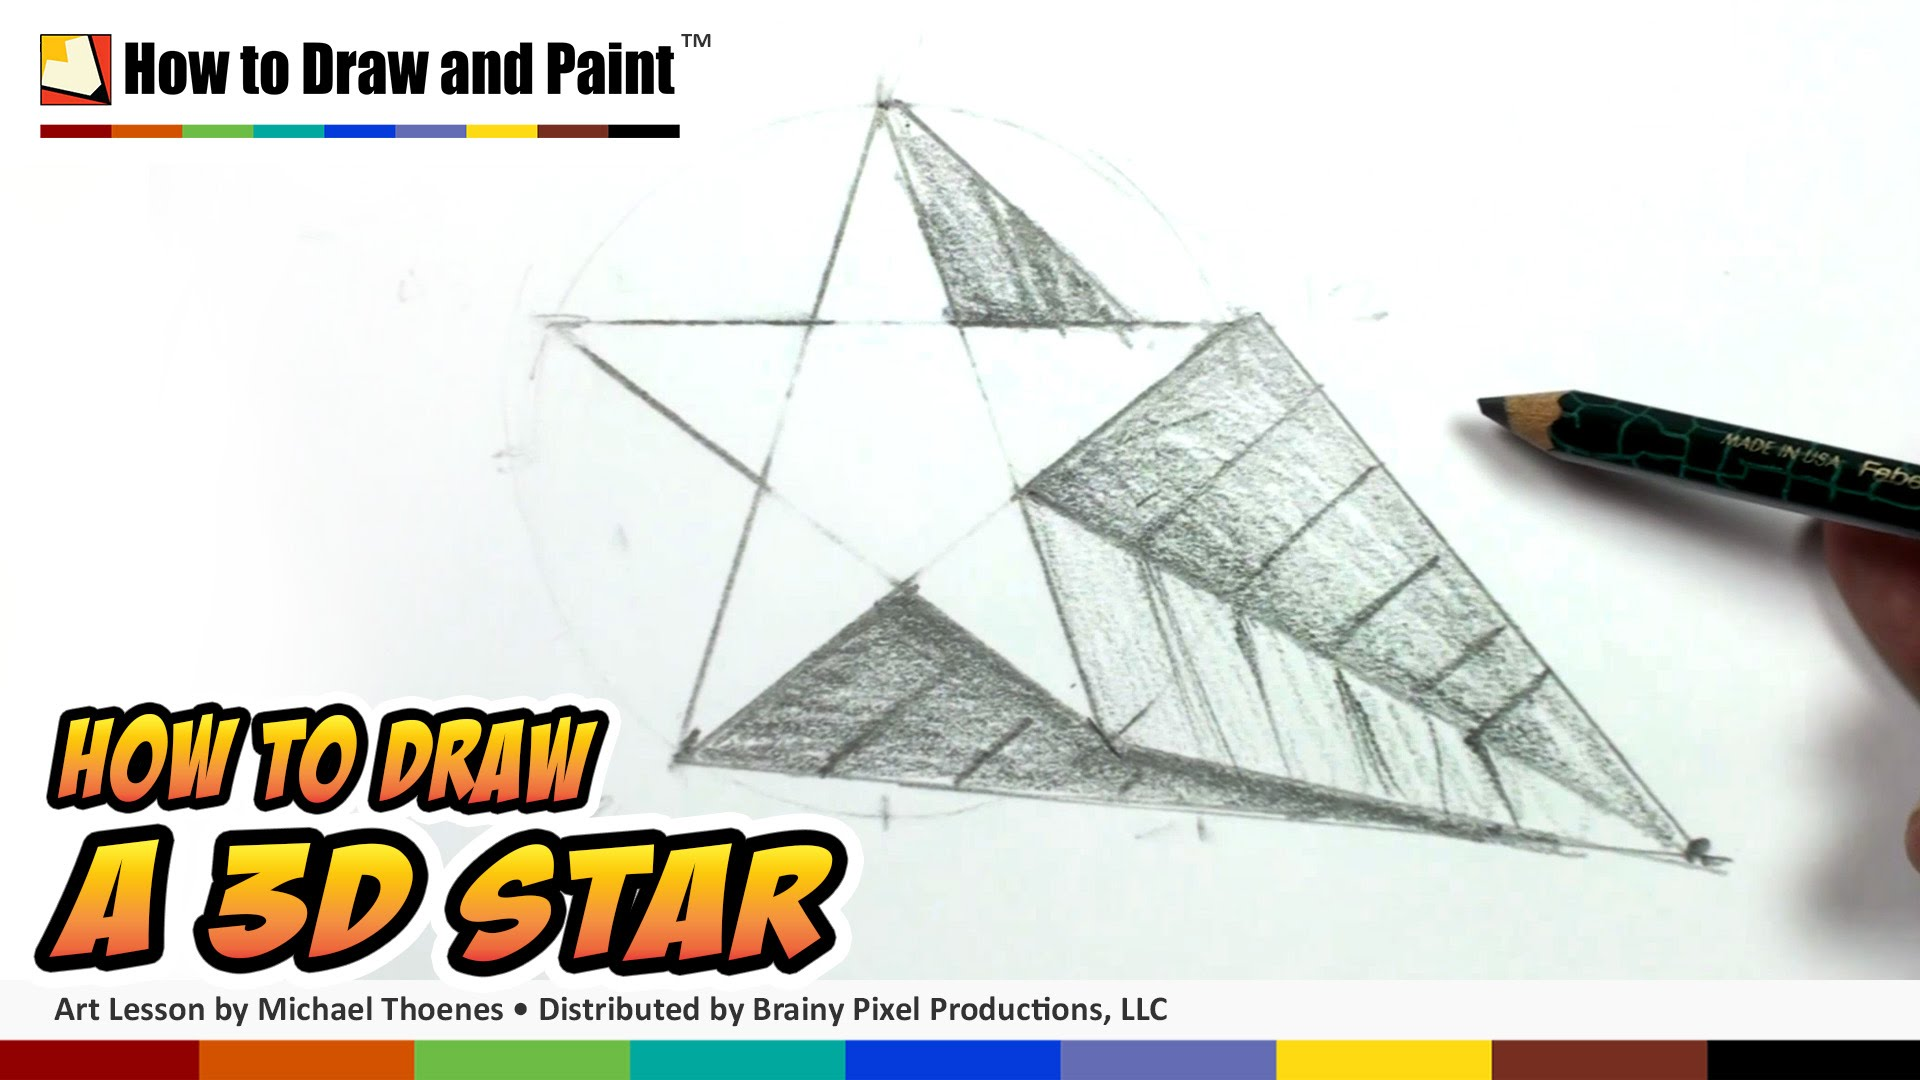 Drawn star two To Draw Shape to One